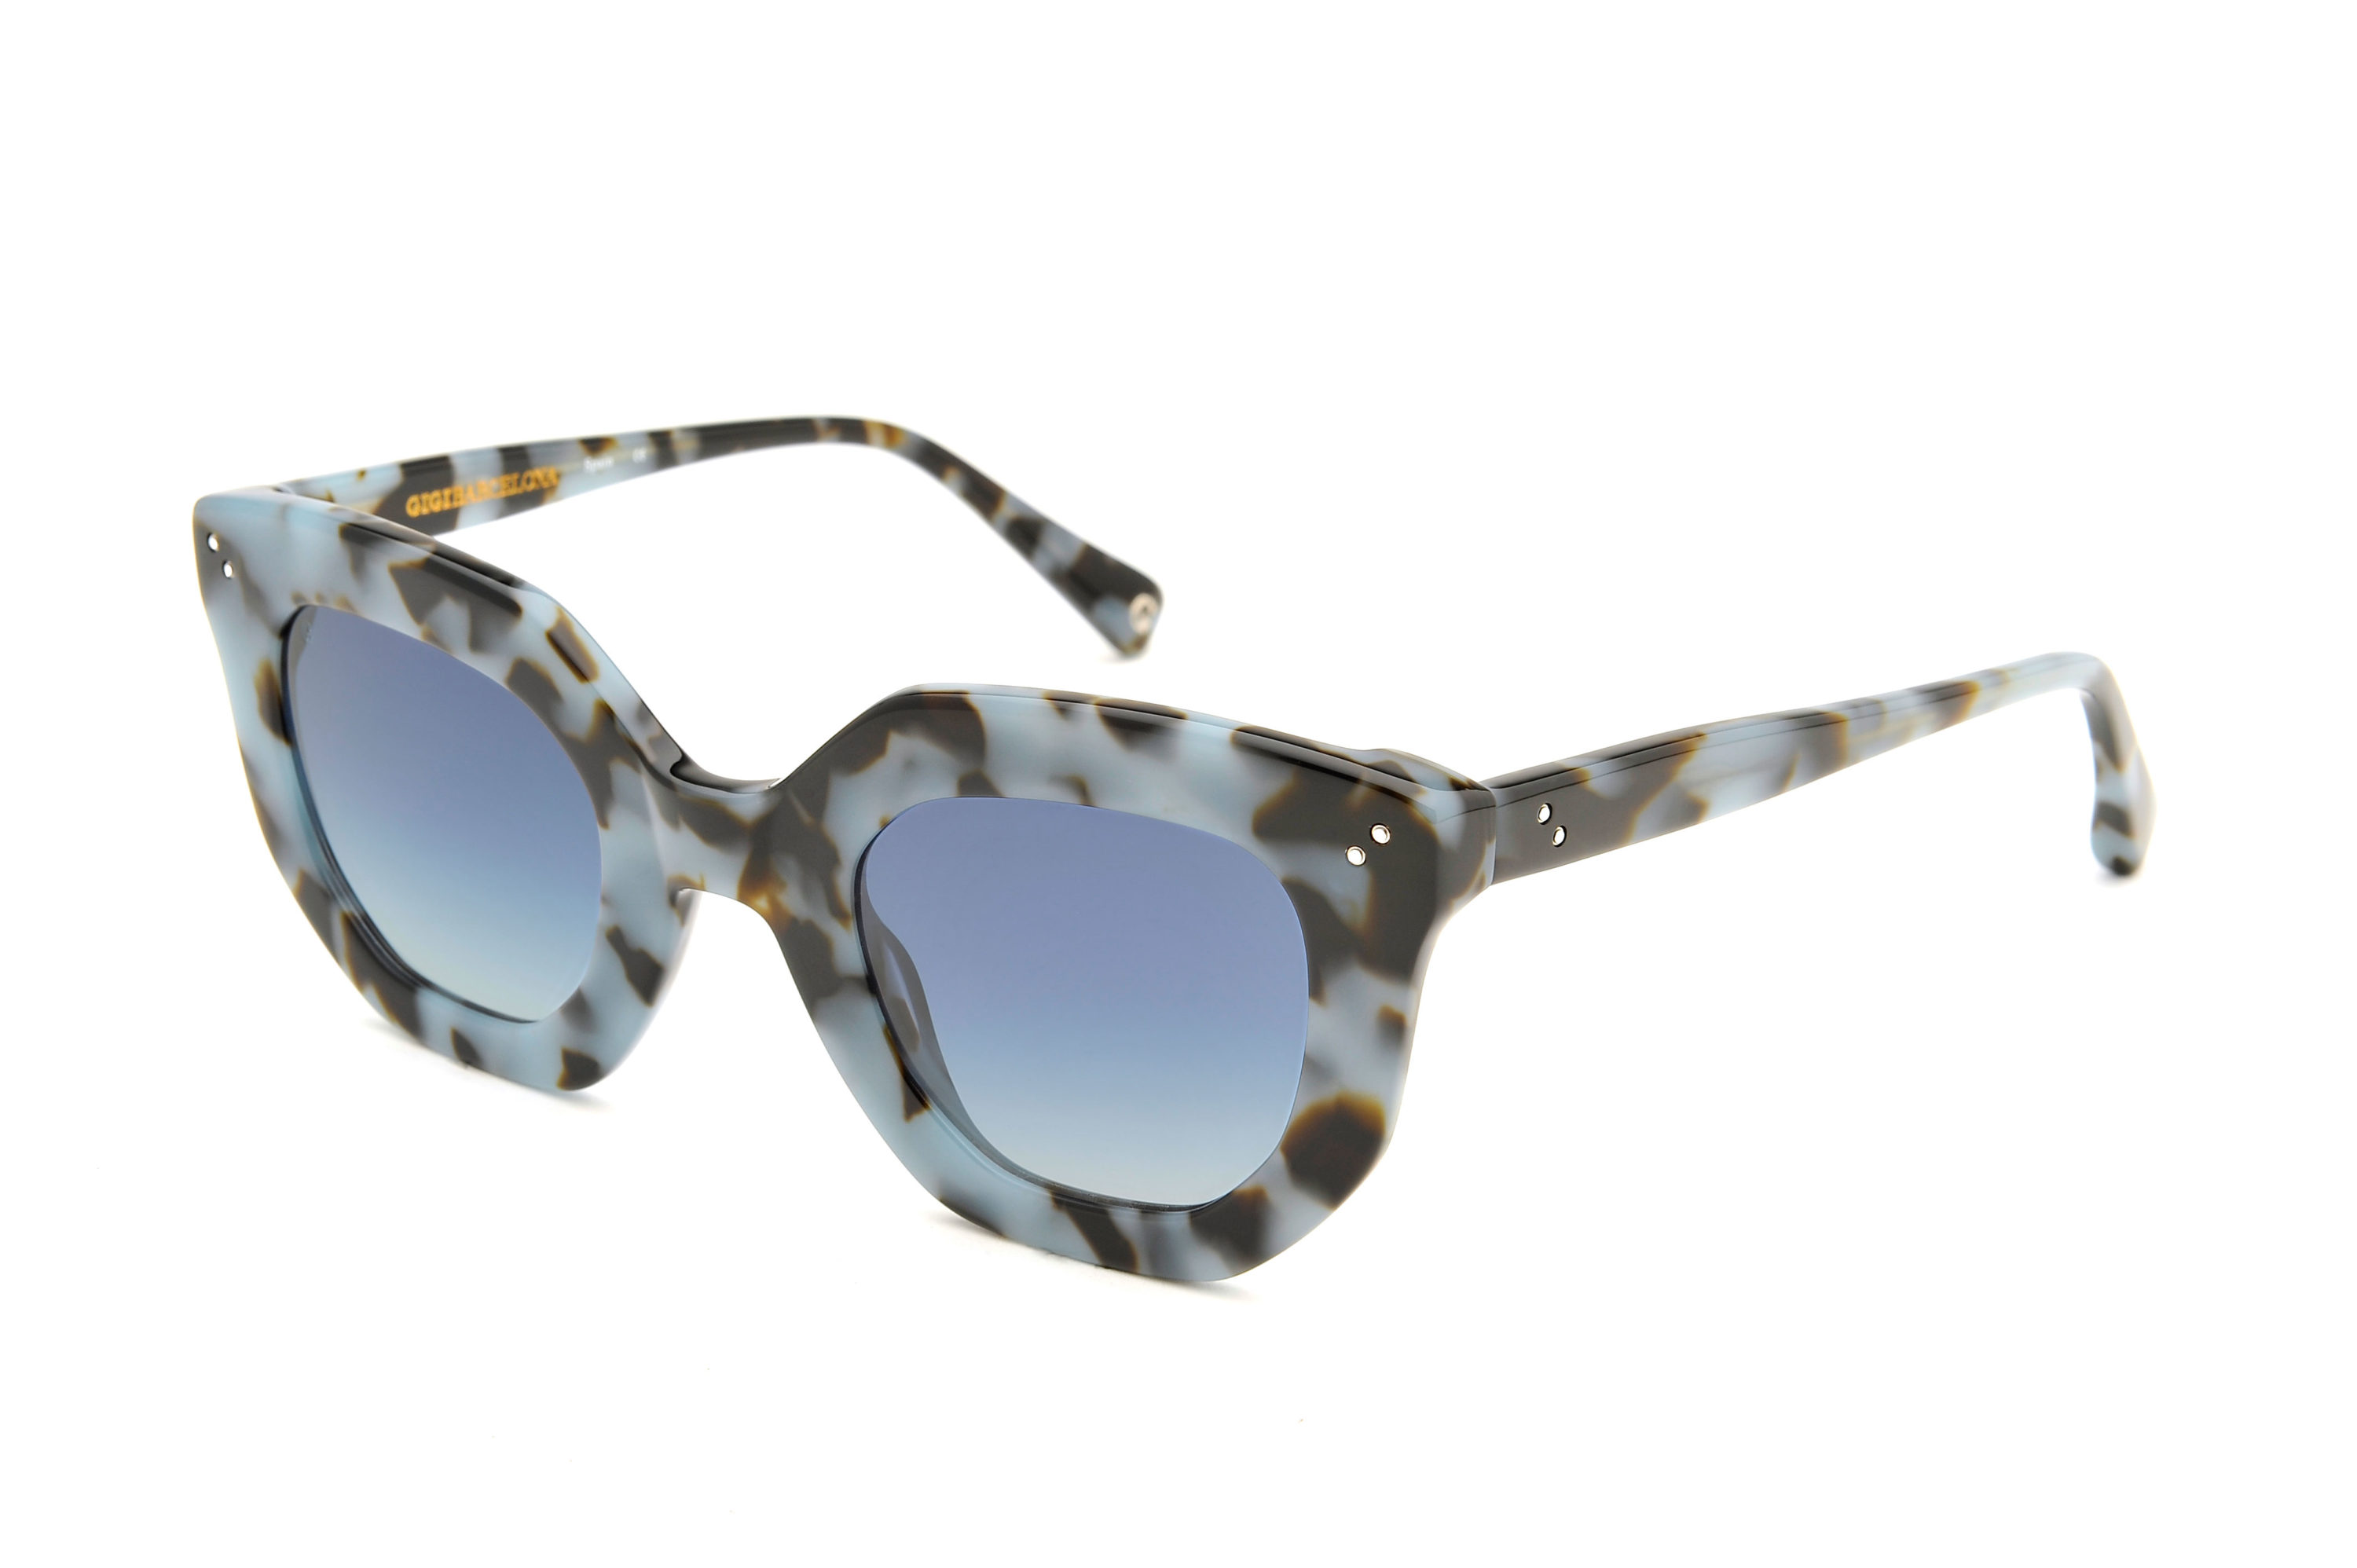 Juliette acetate cat eye grey sunglasses by GIGI Studios